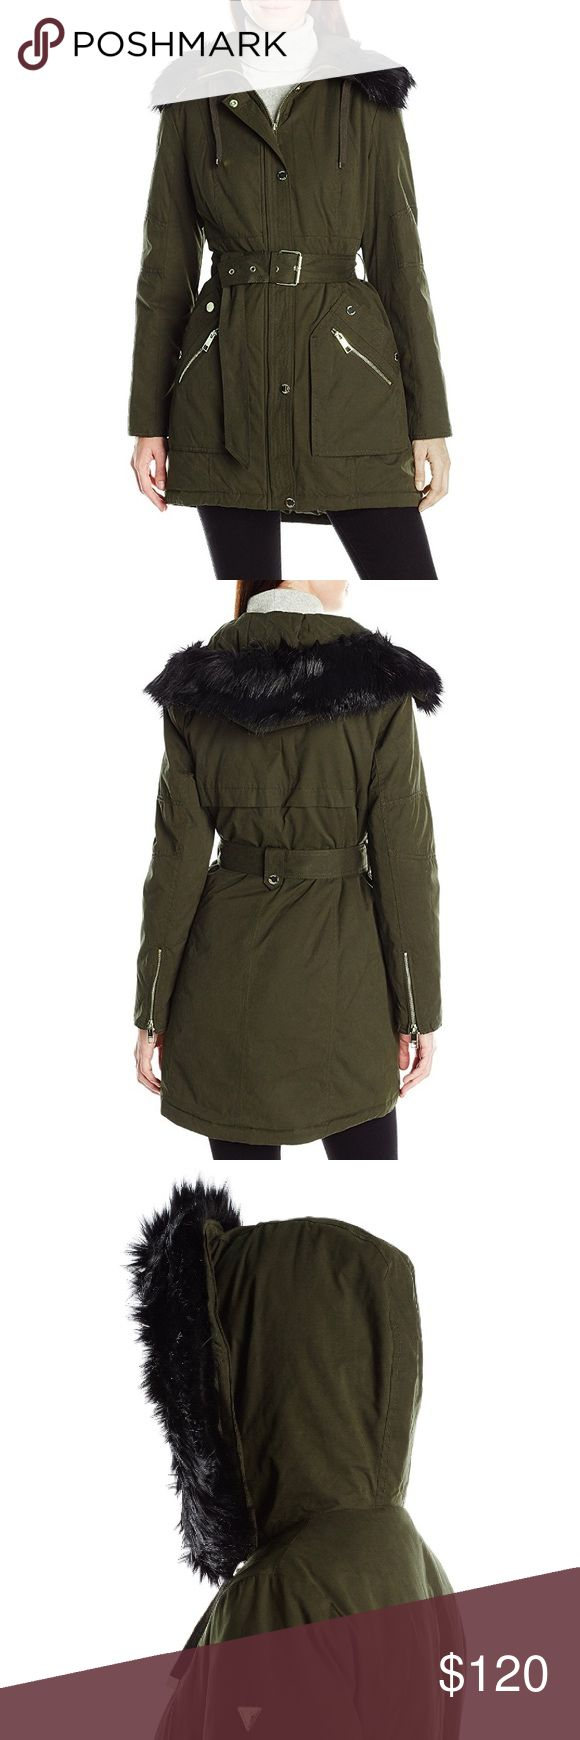 GUESS Olive Green Anorak Parka Utility Jacket GUESS women's belted parka with faux fur trim hood. This coat has a zip closure with a snap-front placket and patch pockets with zipper detail. Figure-flattering and absolutely stunning yet basic enough for a regular day. 2016 Collection. Was out in stores in October, 2016. Guess Jackets & Coats Utility Jackets